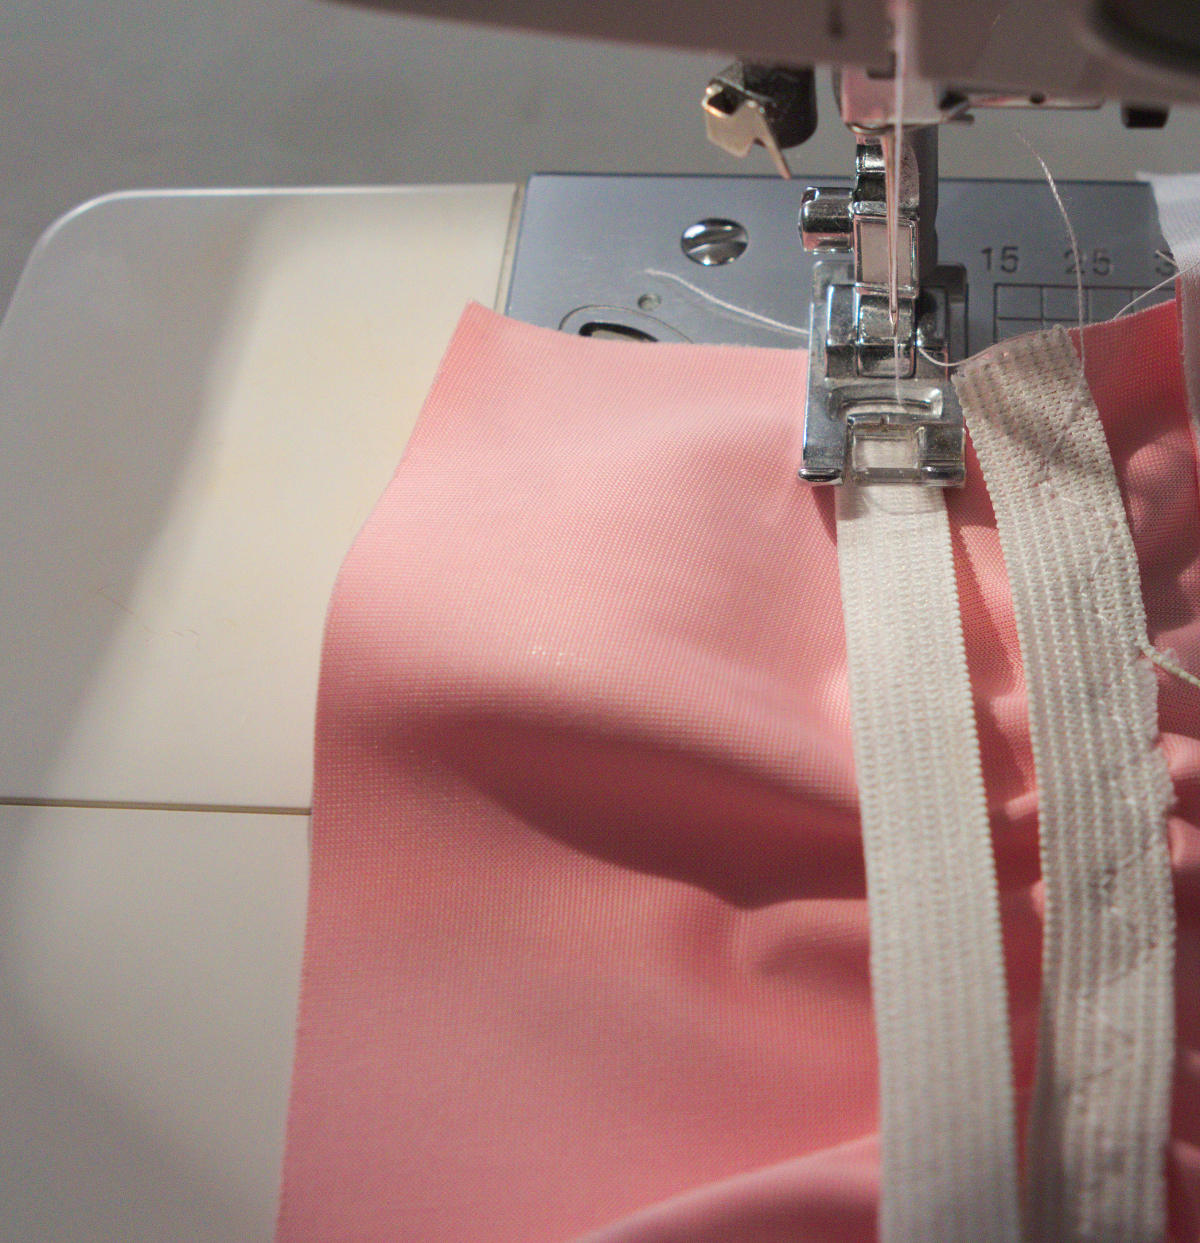 Sew elastic to waistband.